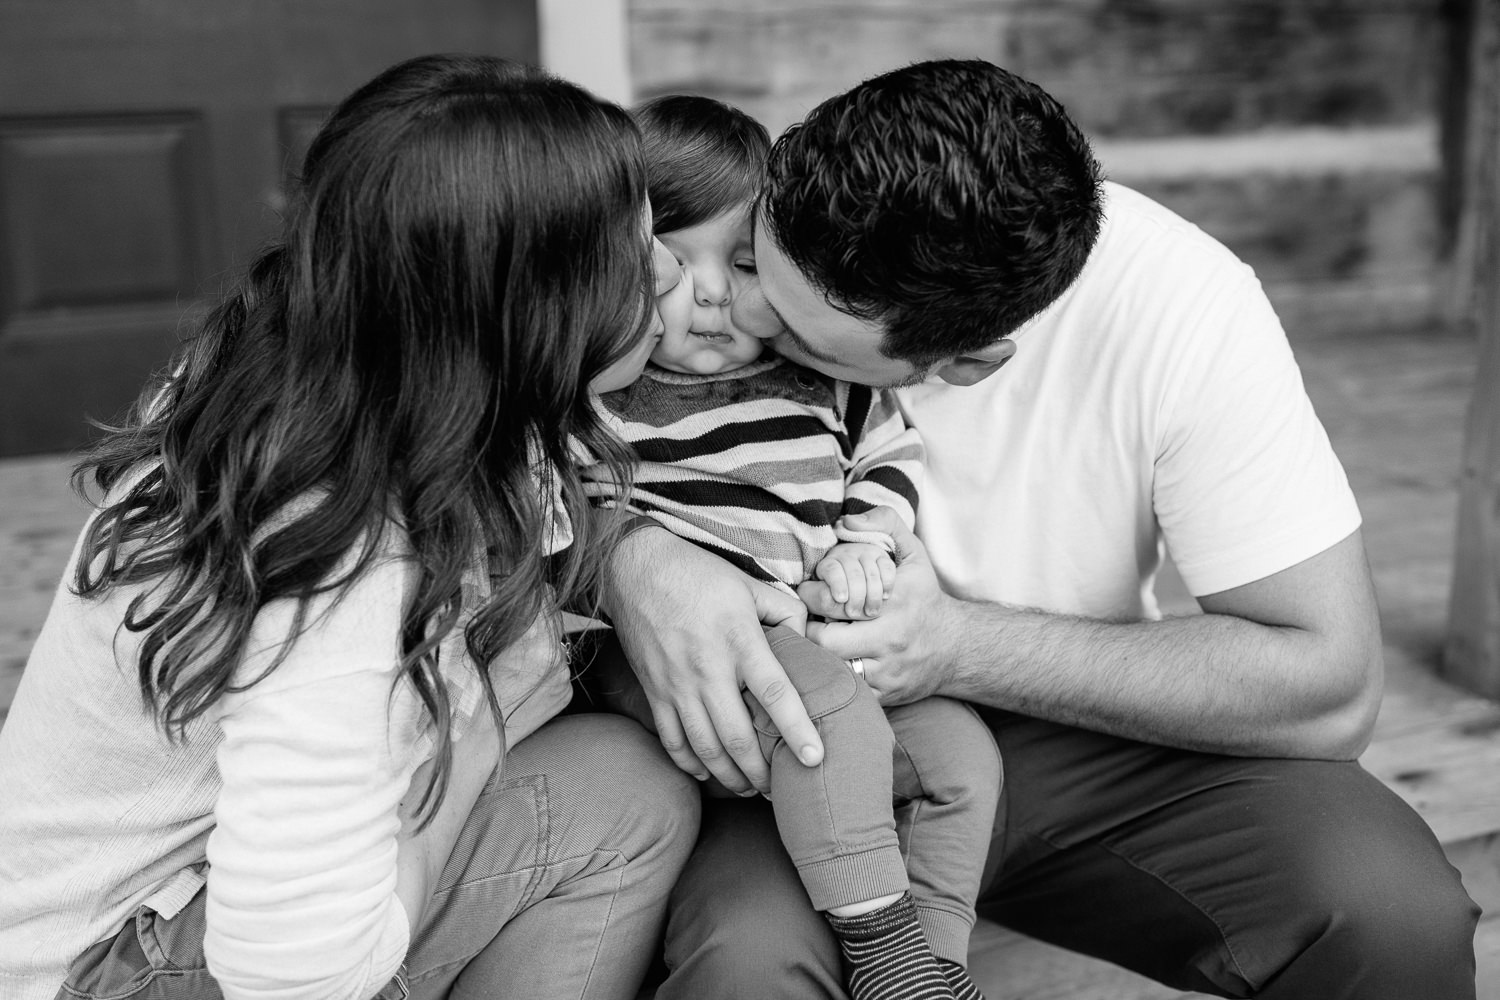 family of 3 sitting on front porch steps of historic log cabin, son between mom and dad, parents kissing child on cheeks - York Region OutdoorPhotography